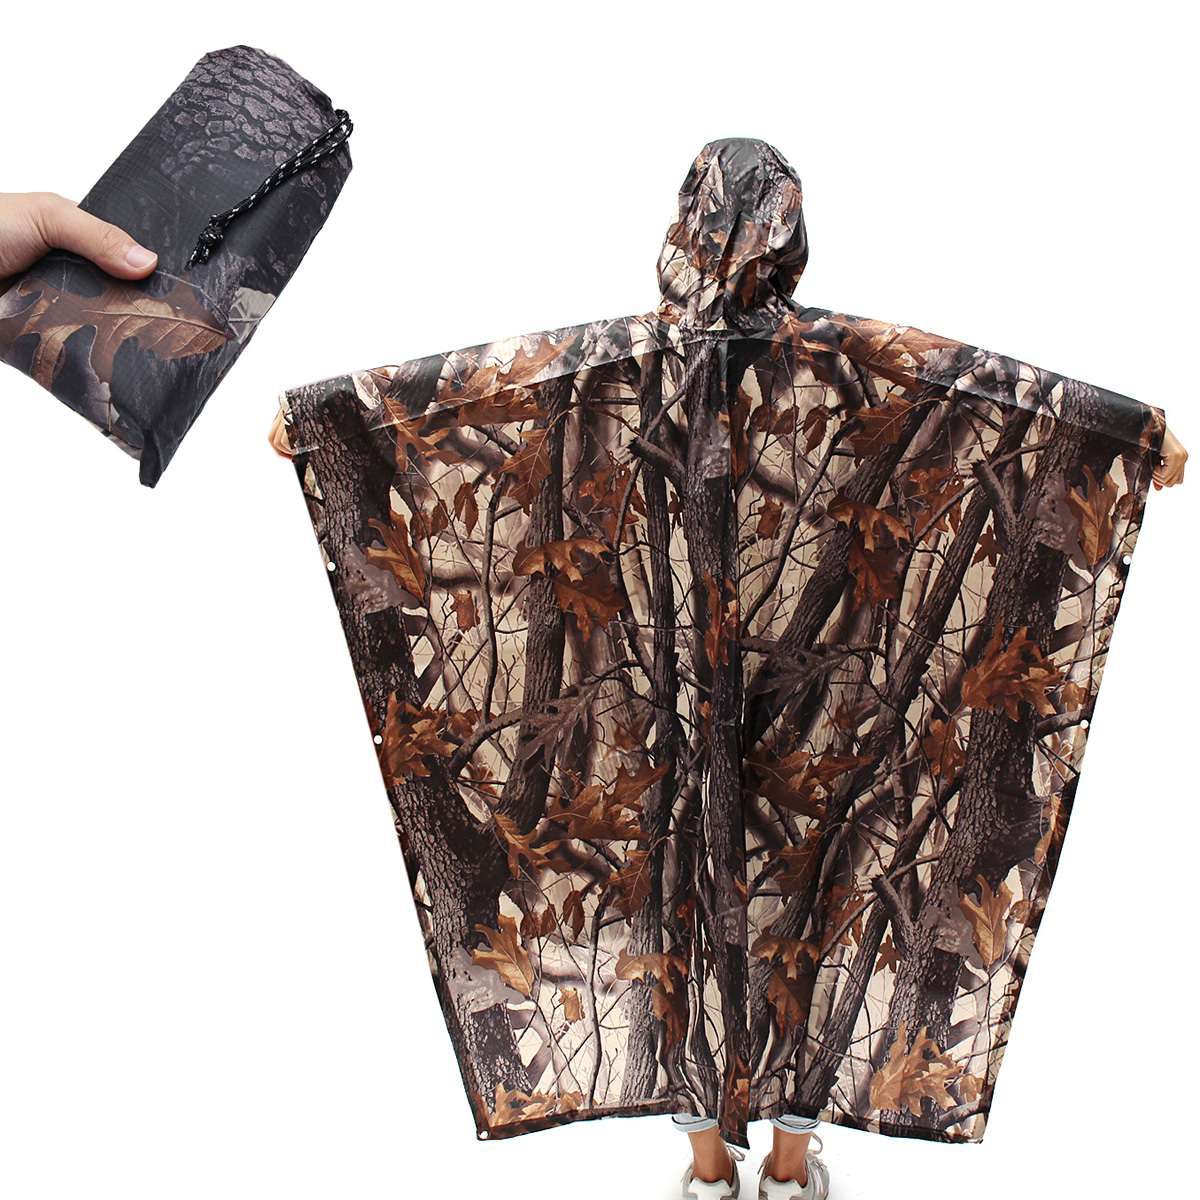 220x145cm 3 In 1 Outdoor Camping Survival Military Travel Camouflage Hiking Poncho Backpack Rain Cover Waterproof Tent Mat